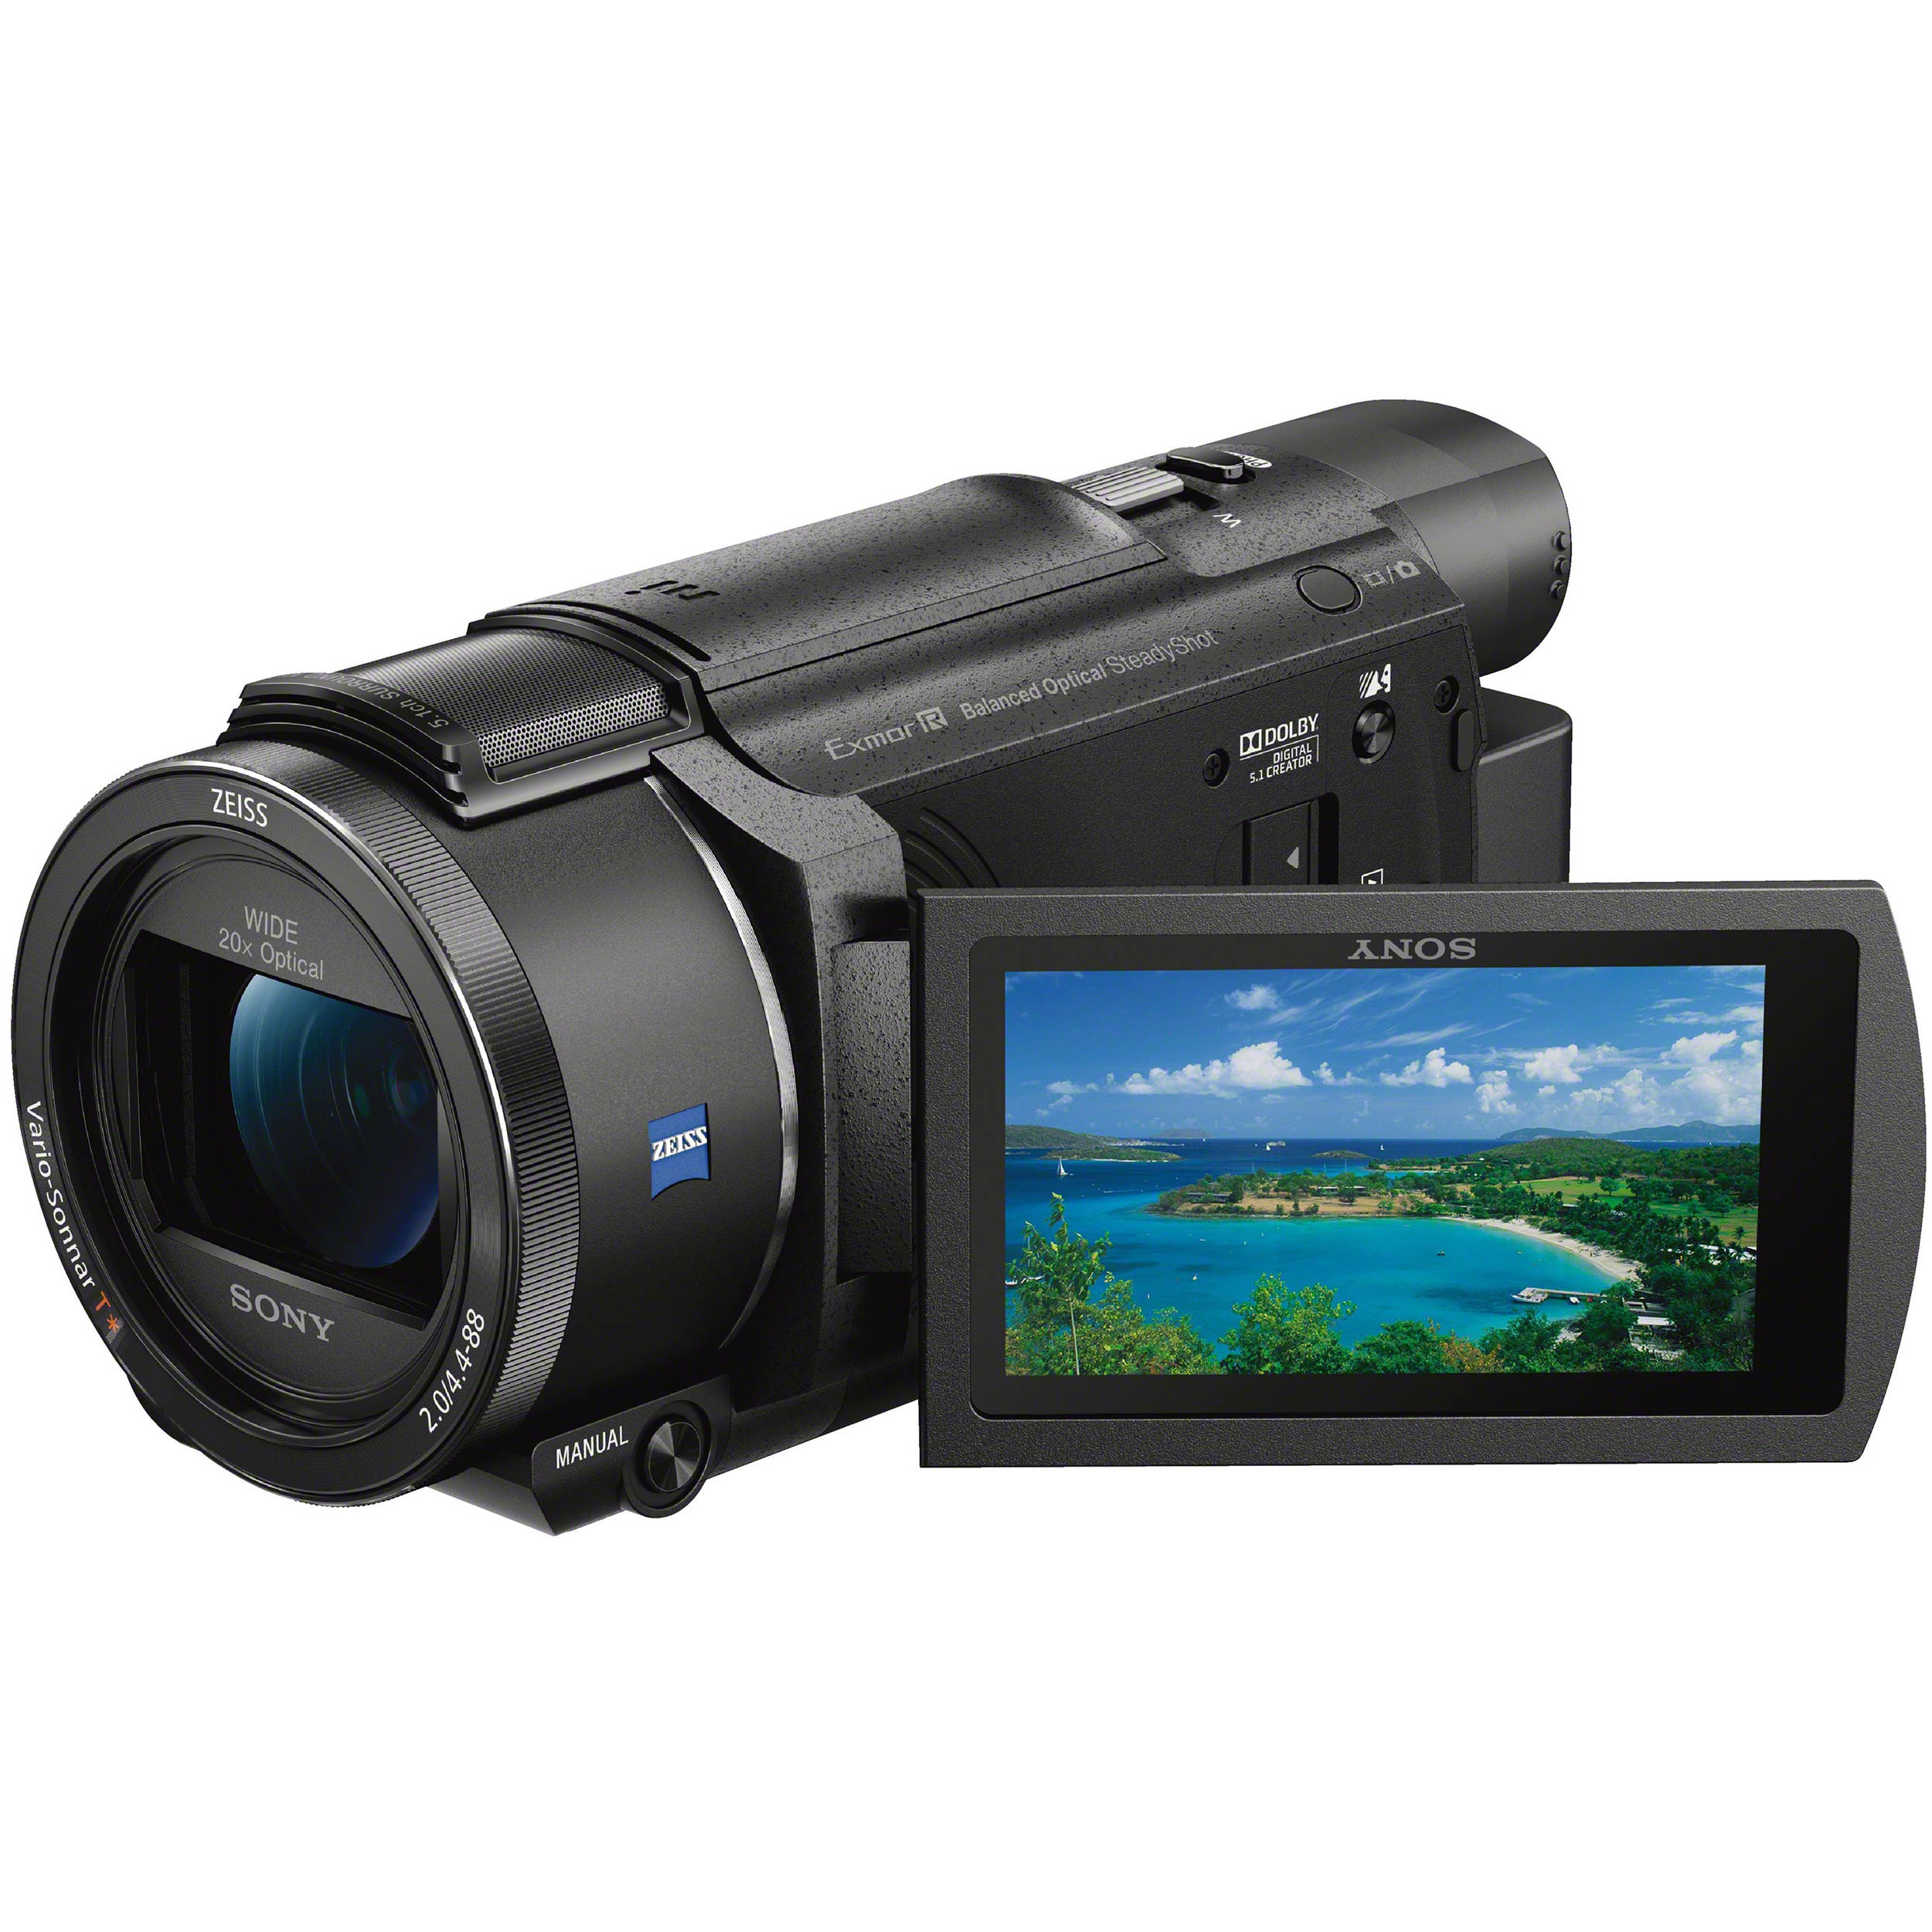 DRIVER FOR SONY DCR-L1 CAMCORDER USB